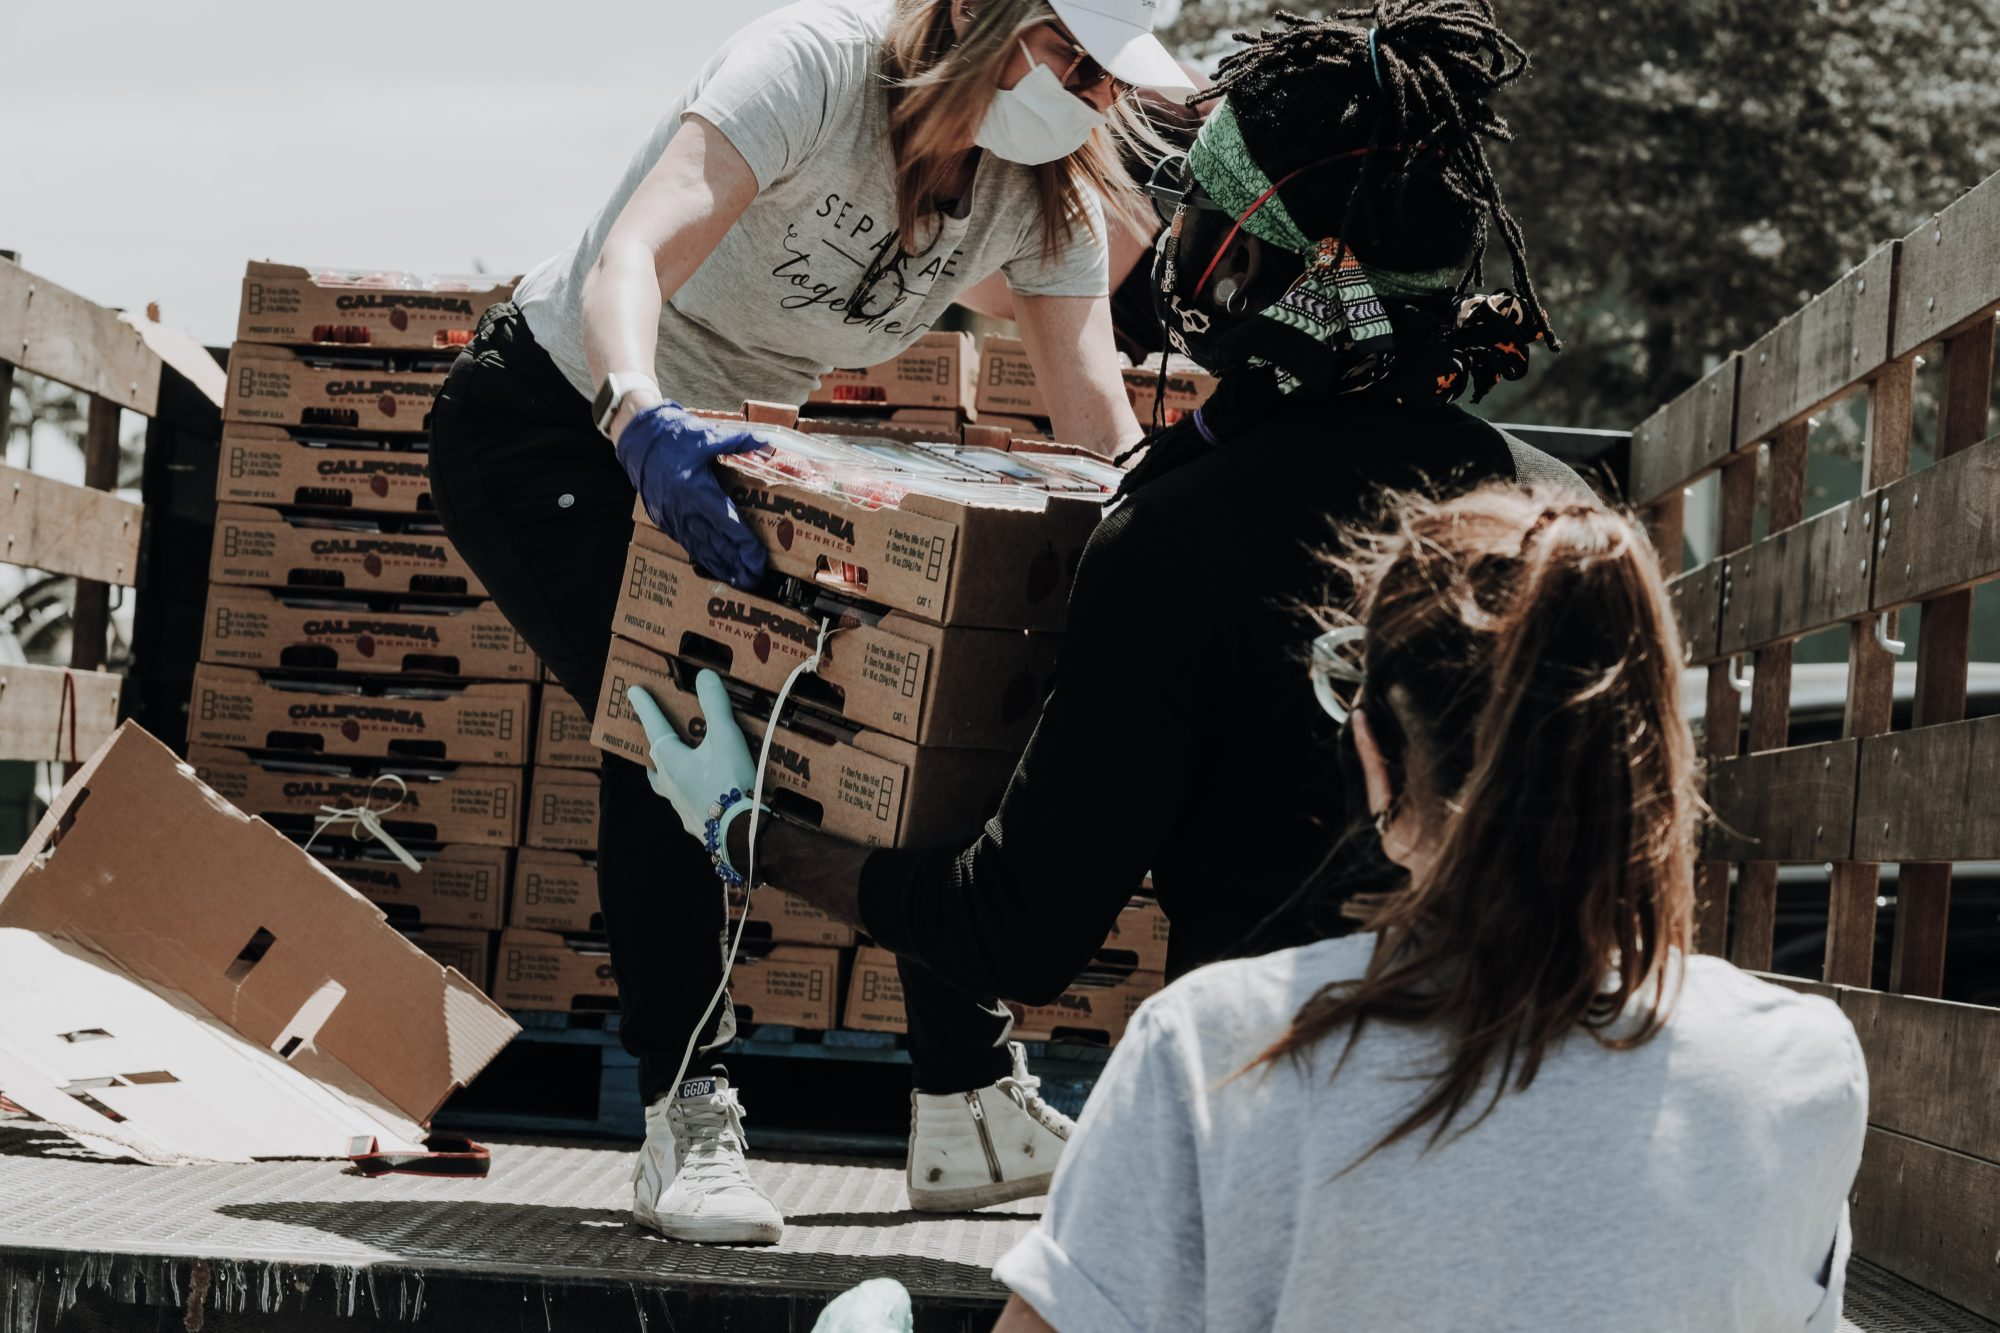 volunteers carrying boxes